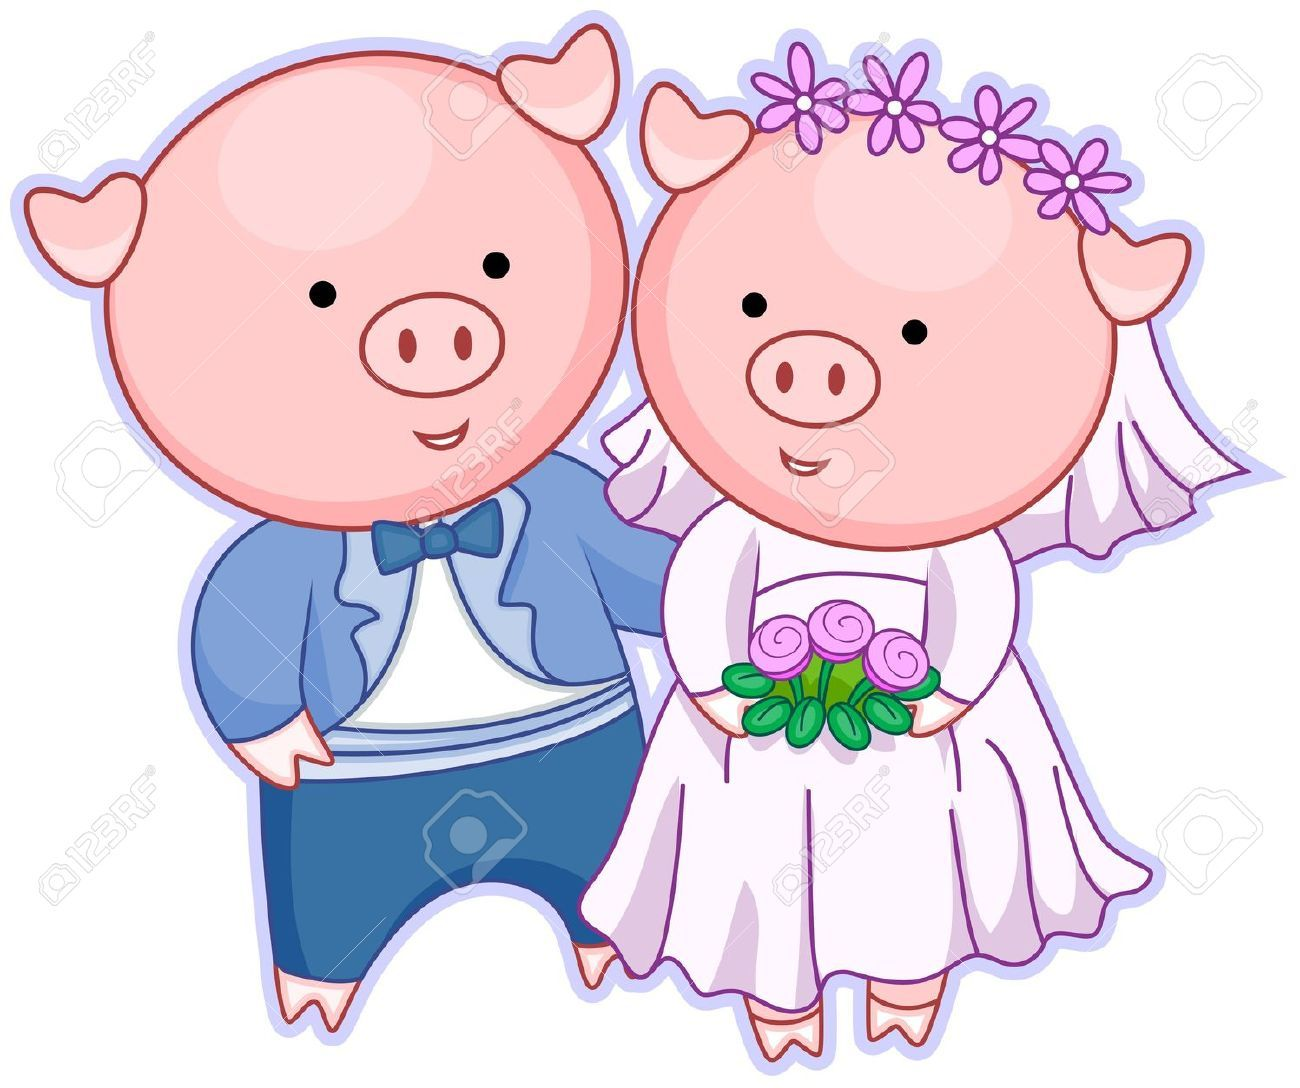 Pig clipart couple. Images stock pictures royalty